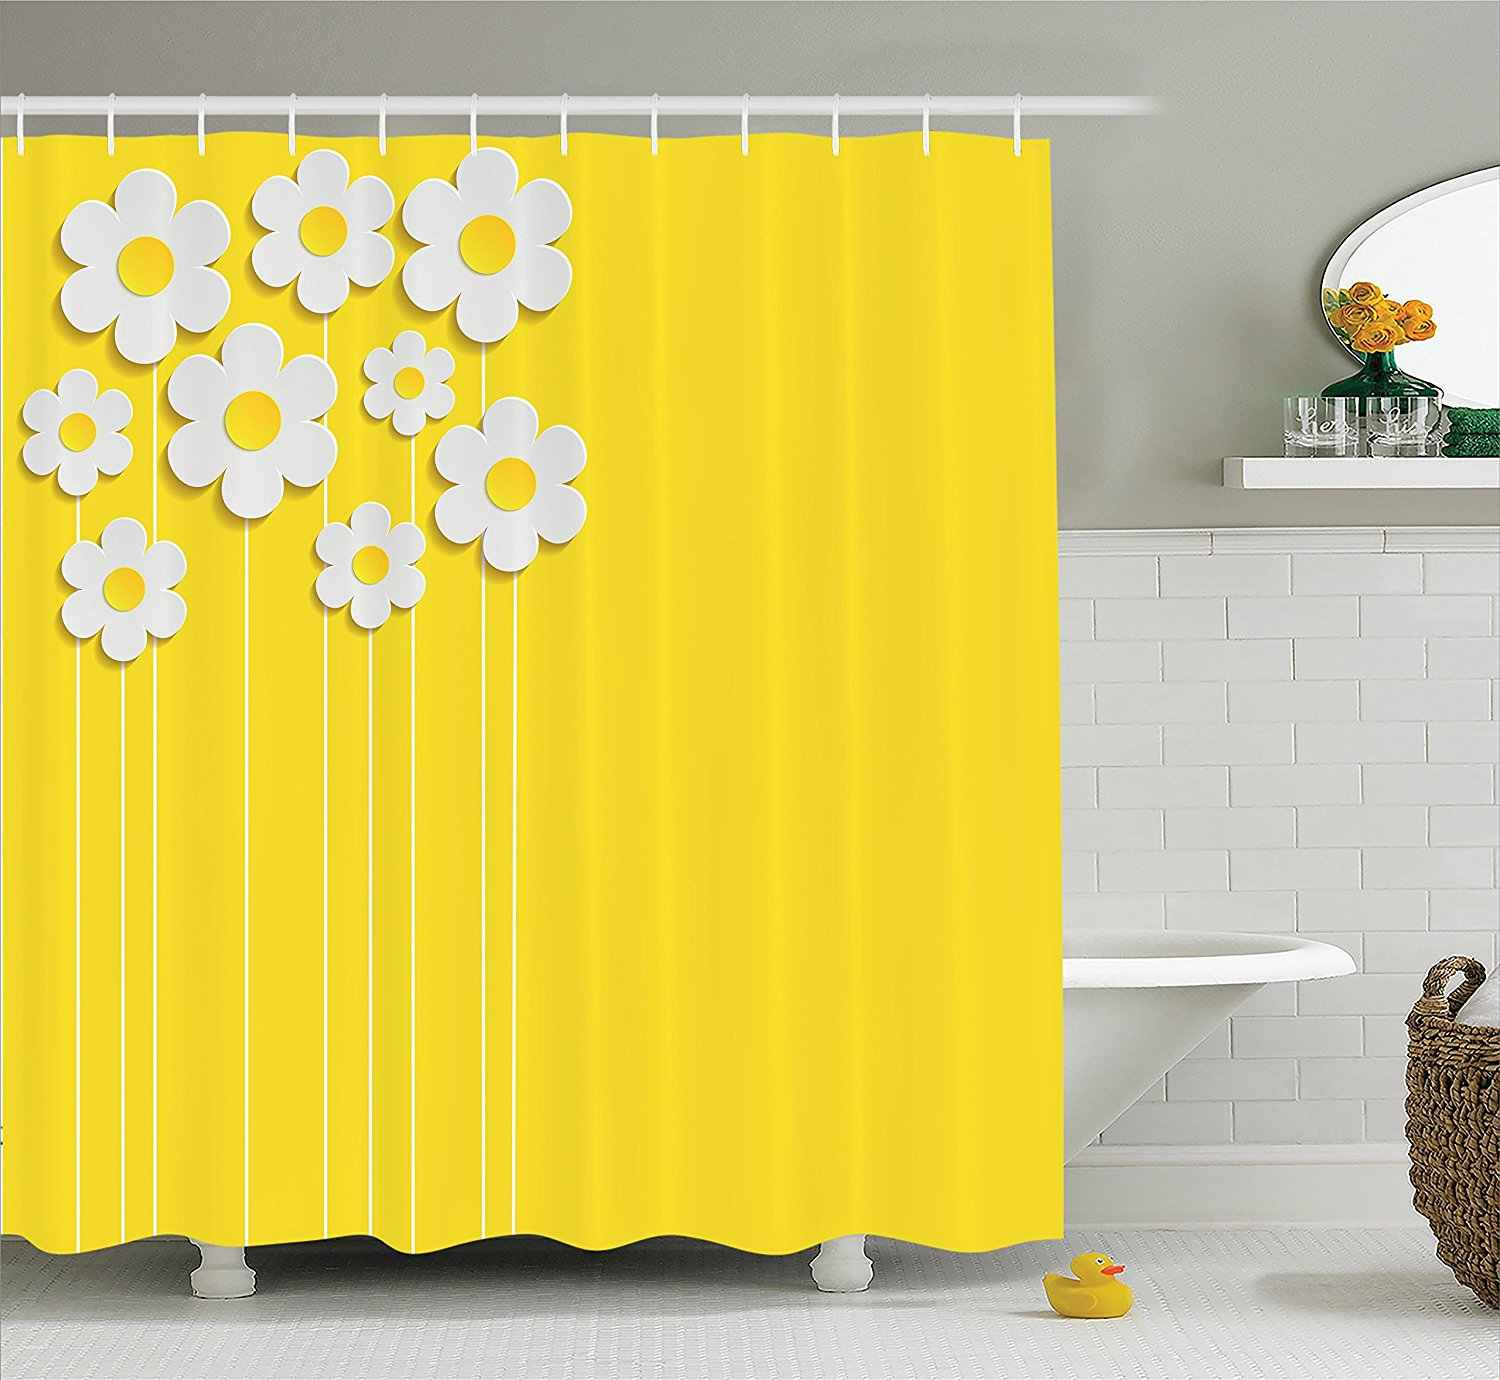 Yellow Decor Shower Curtain Set Spring Flowers Daisy Pattern On